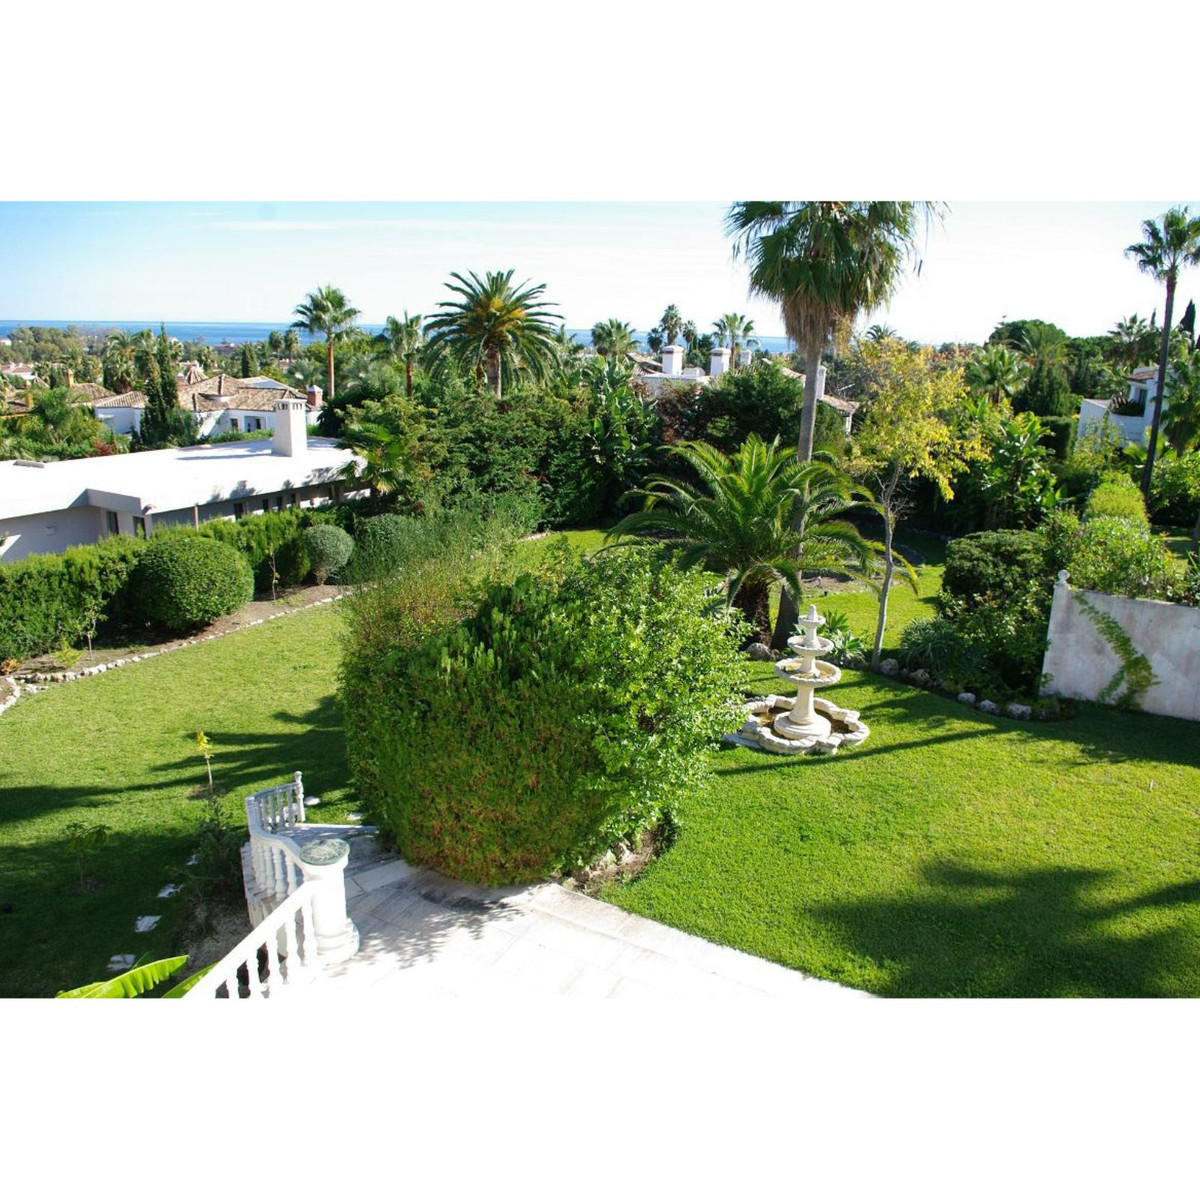 Spacious villa close to everything, you can walk to the beach and Puerto Banus with all its leisure ,Spain